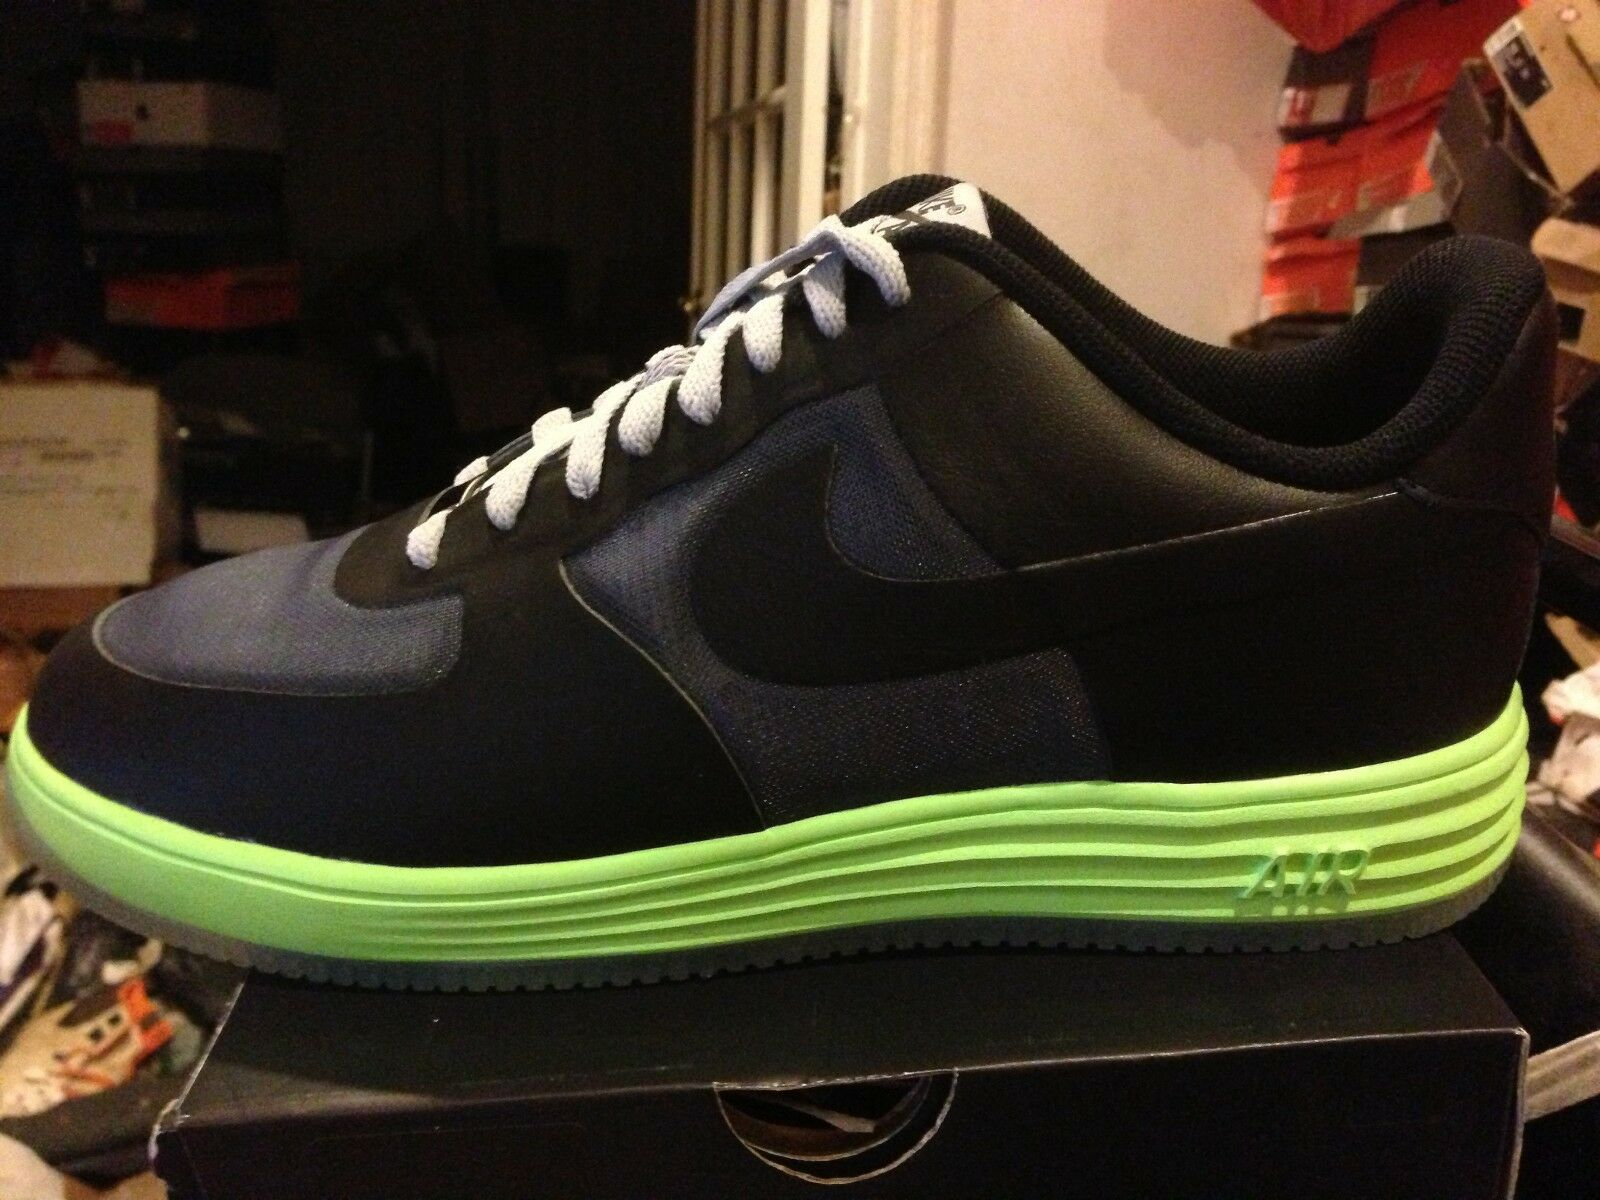 NIKE LUNAR FORCE 1 FUSE LEATHER GRAY/LIME BNIB SIZE 12